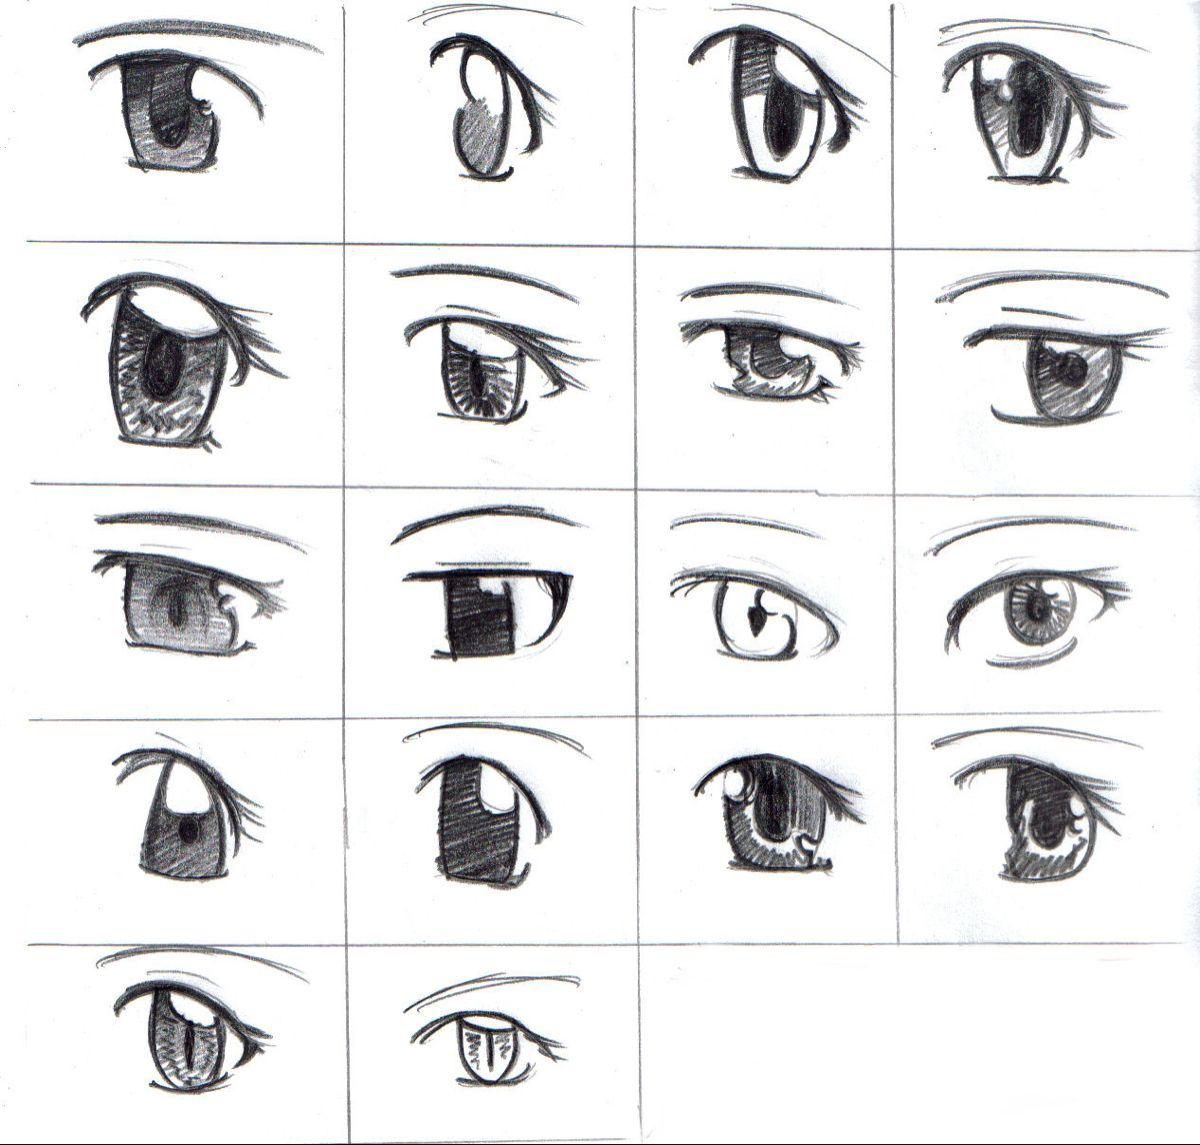 How To Draw Manga Anime Eyes Tutorial Easy Simple Beginner Steps Wow Sketch Drawing Anime Eye Drawing Anime Eyes Easy Cartoon Drawings